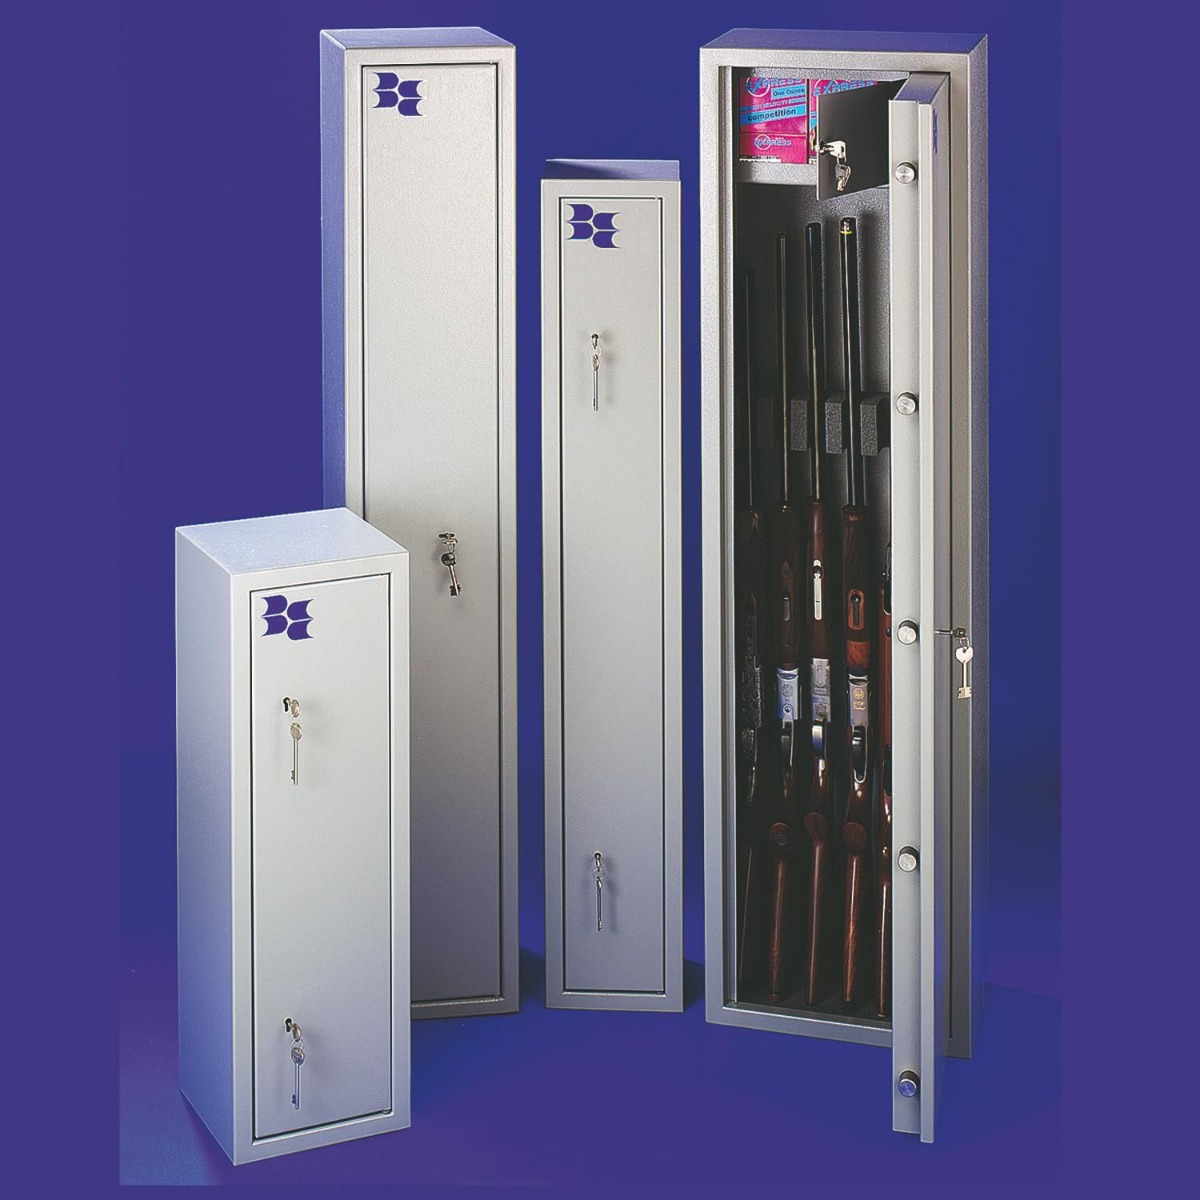 Bratton Sound gun cabinets available at Fur Feather & Fin